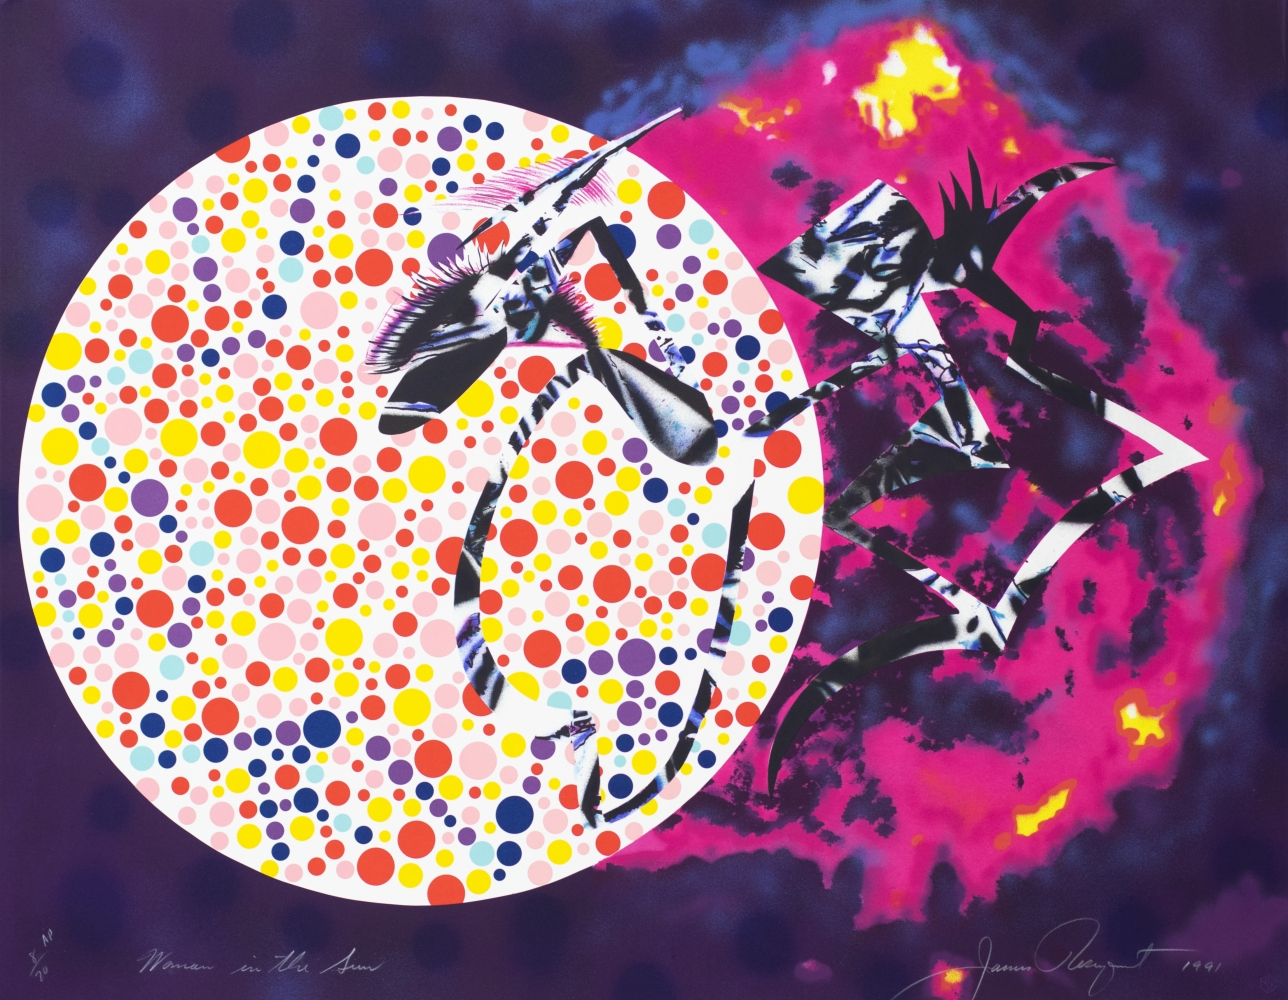 James Rosenquist, Woman in the Sun, 1991, James Rosenquist Lithograph on Rives BFK paper, 33 x 42.5 inches, AP 8 of 20, edition of 60, James Rosenquist Art For sale at Manolis Projects Art Gallery, Miami Fl